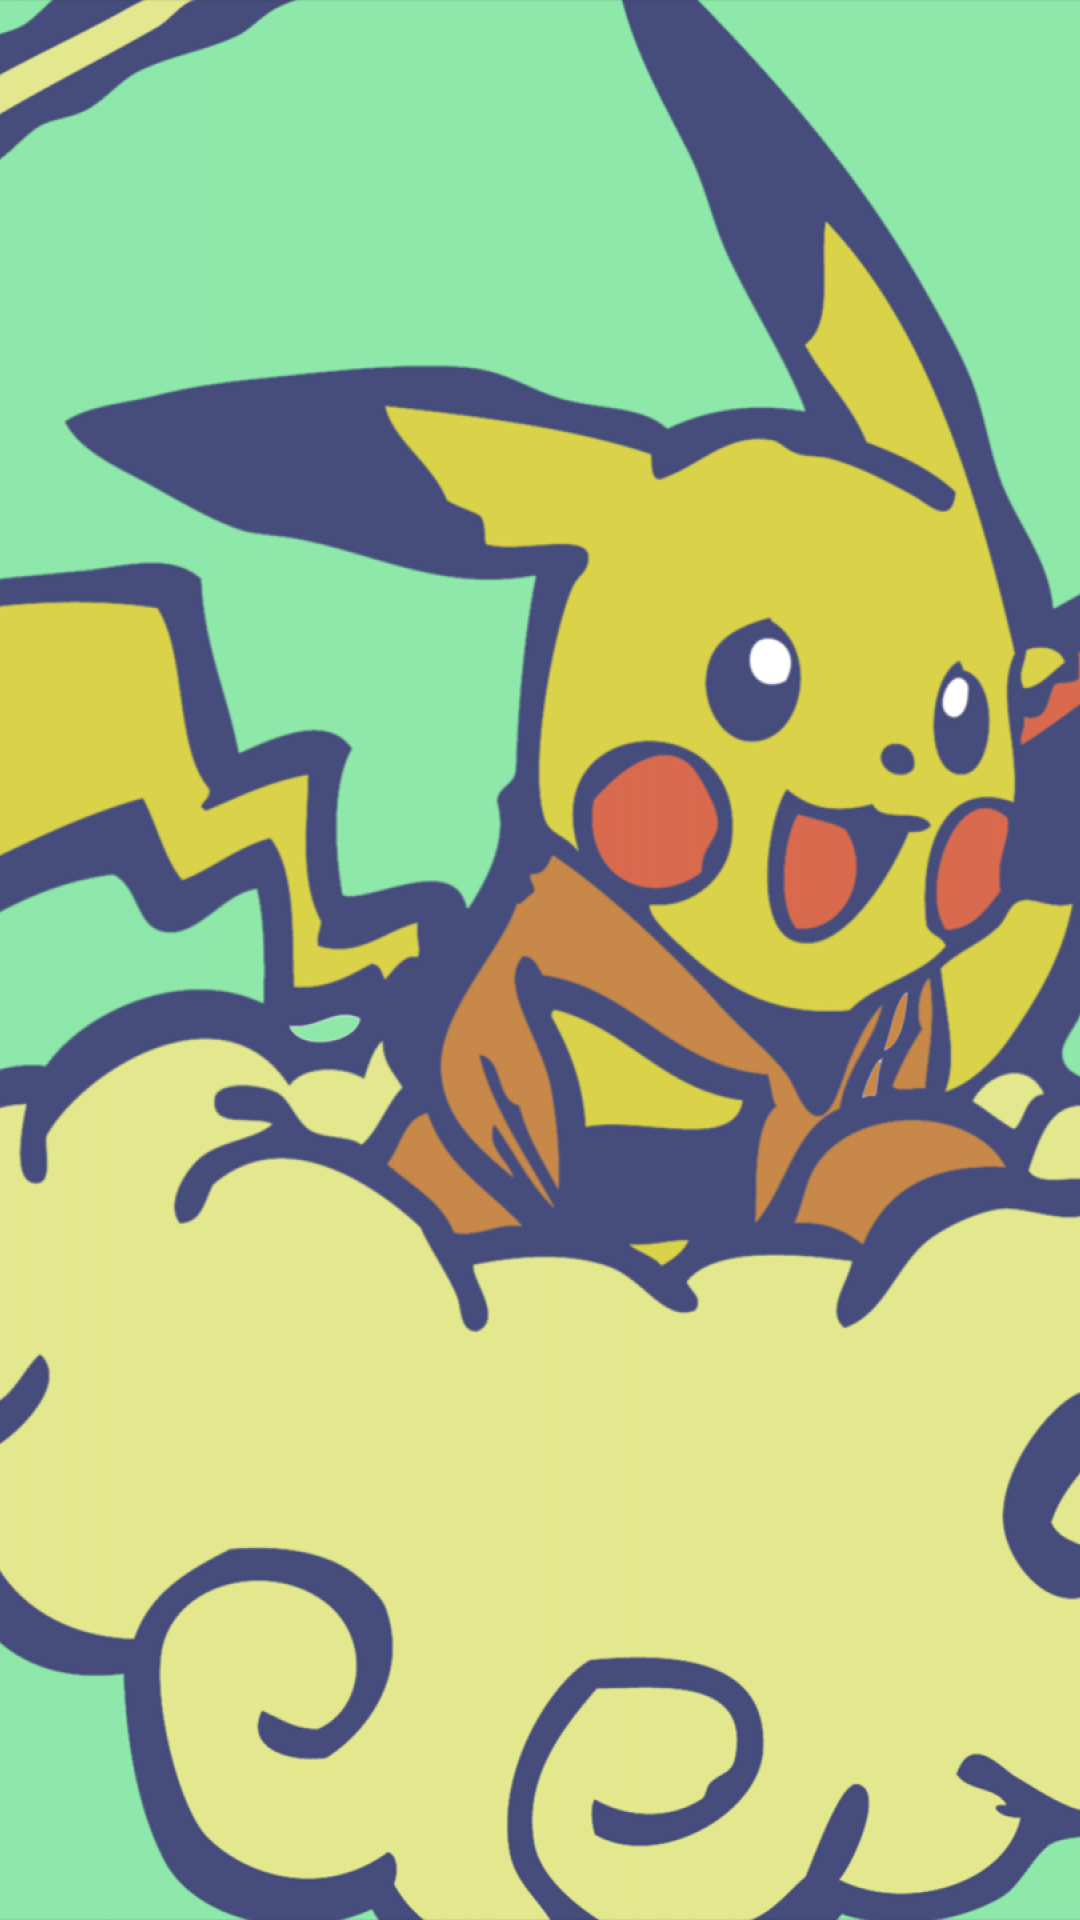 Pikachu Aesthetic Wallpapers - Wallpaper Cave